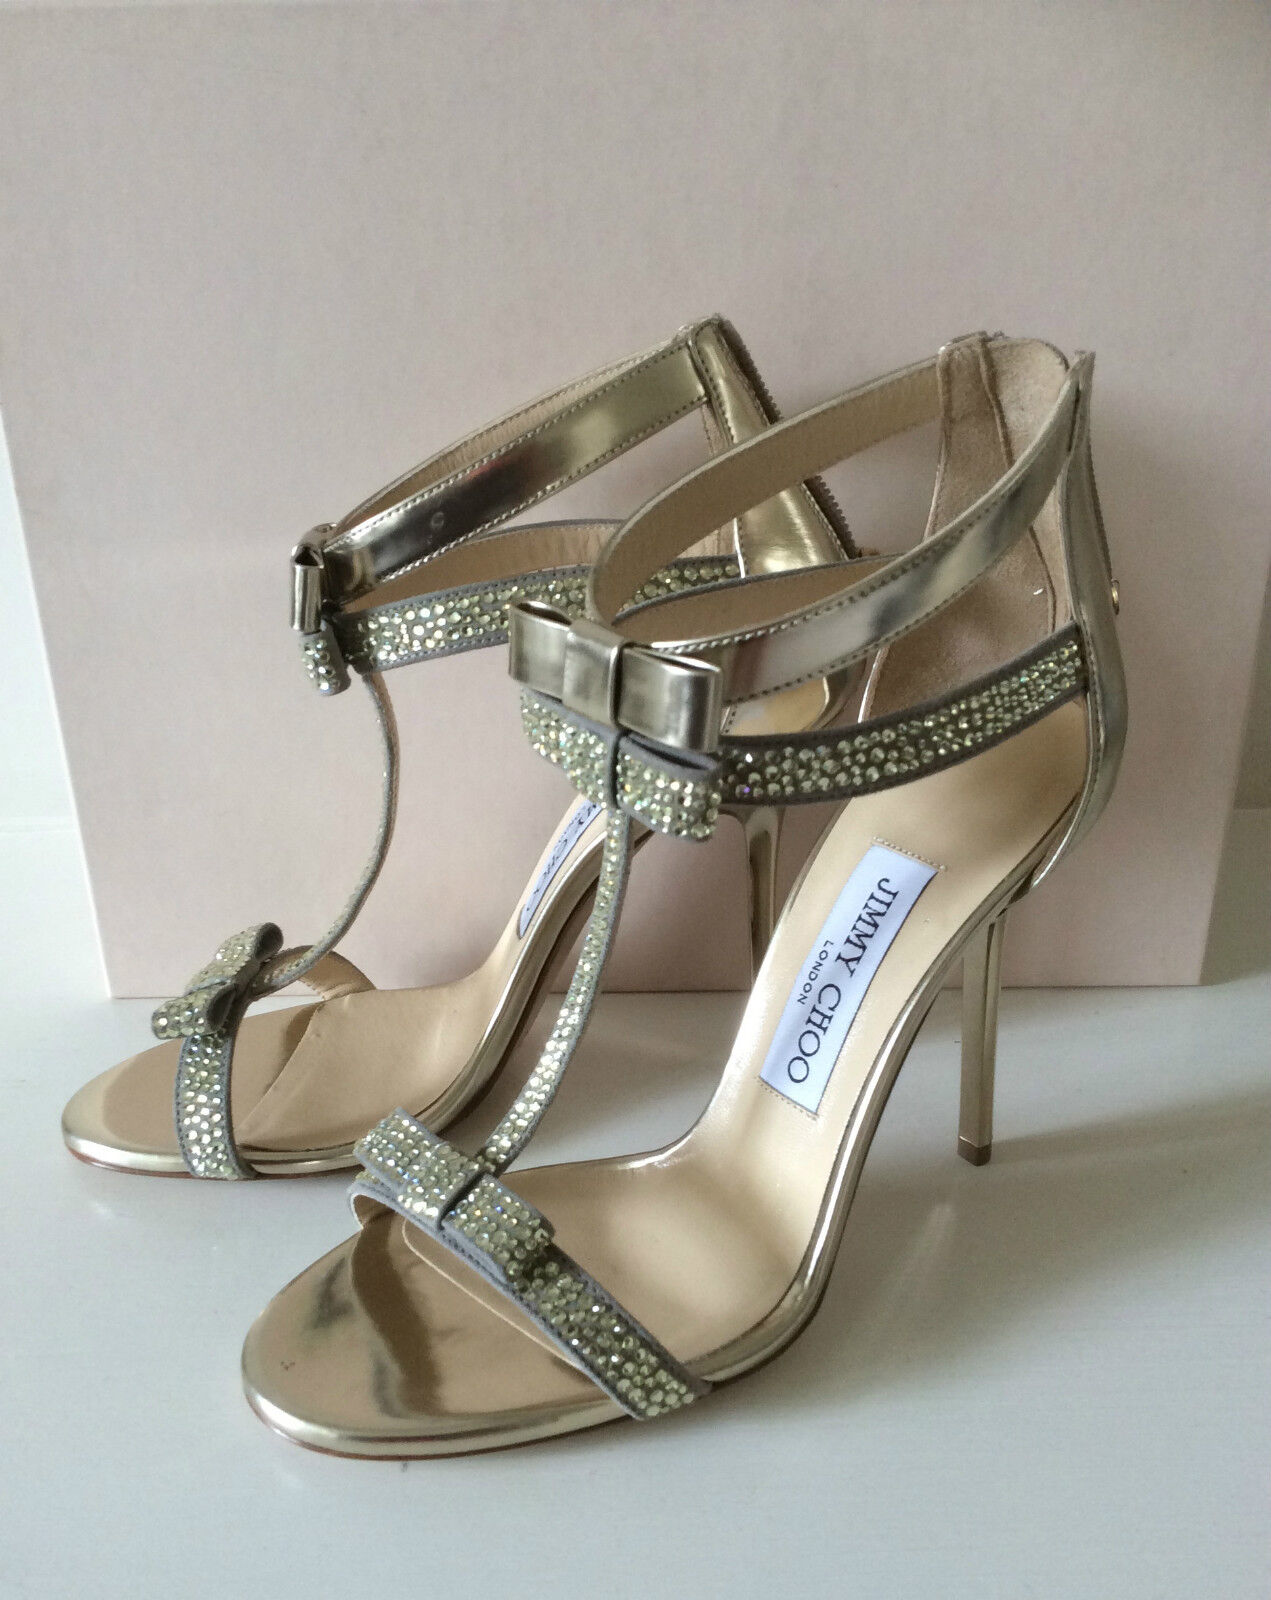 Jimmy CHOO Escape Oro Fiocco Scarpe per sposa OCCASIONE, 36 UK3